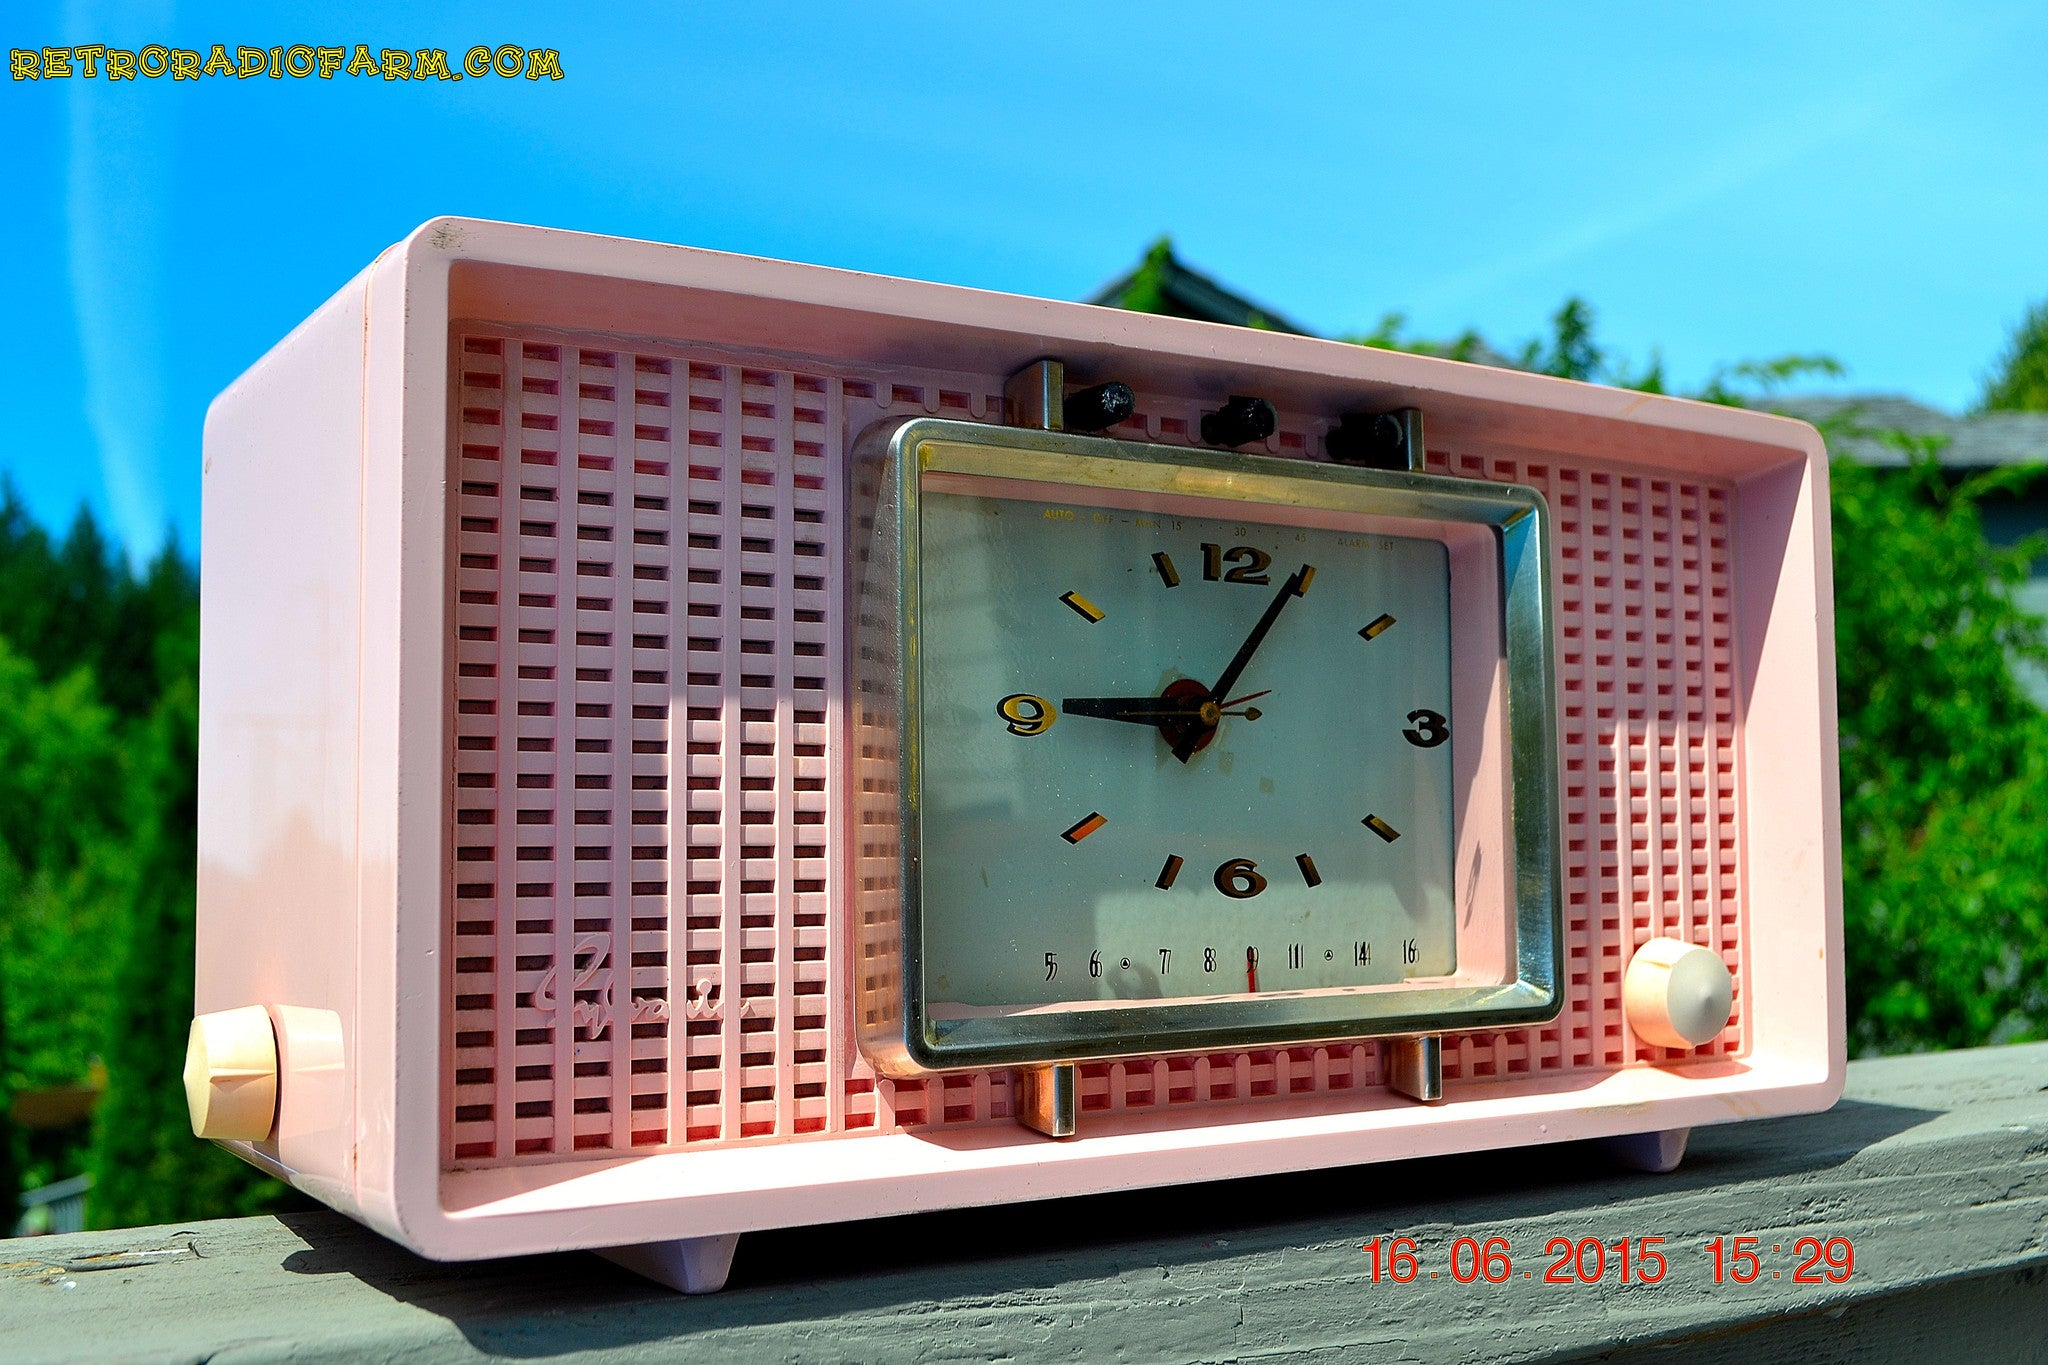 SOLD! - Sept 9, 2015 - BLUETOOTH MP3 READY - BIG PINK Mid Century Retro Jetsons 1956 Sylvania Model R598-7509 Tube AM Clock Radio Totally Restored! , Vintage Radio - Sylvania, Retro Radio Farm  - 1